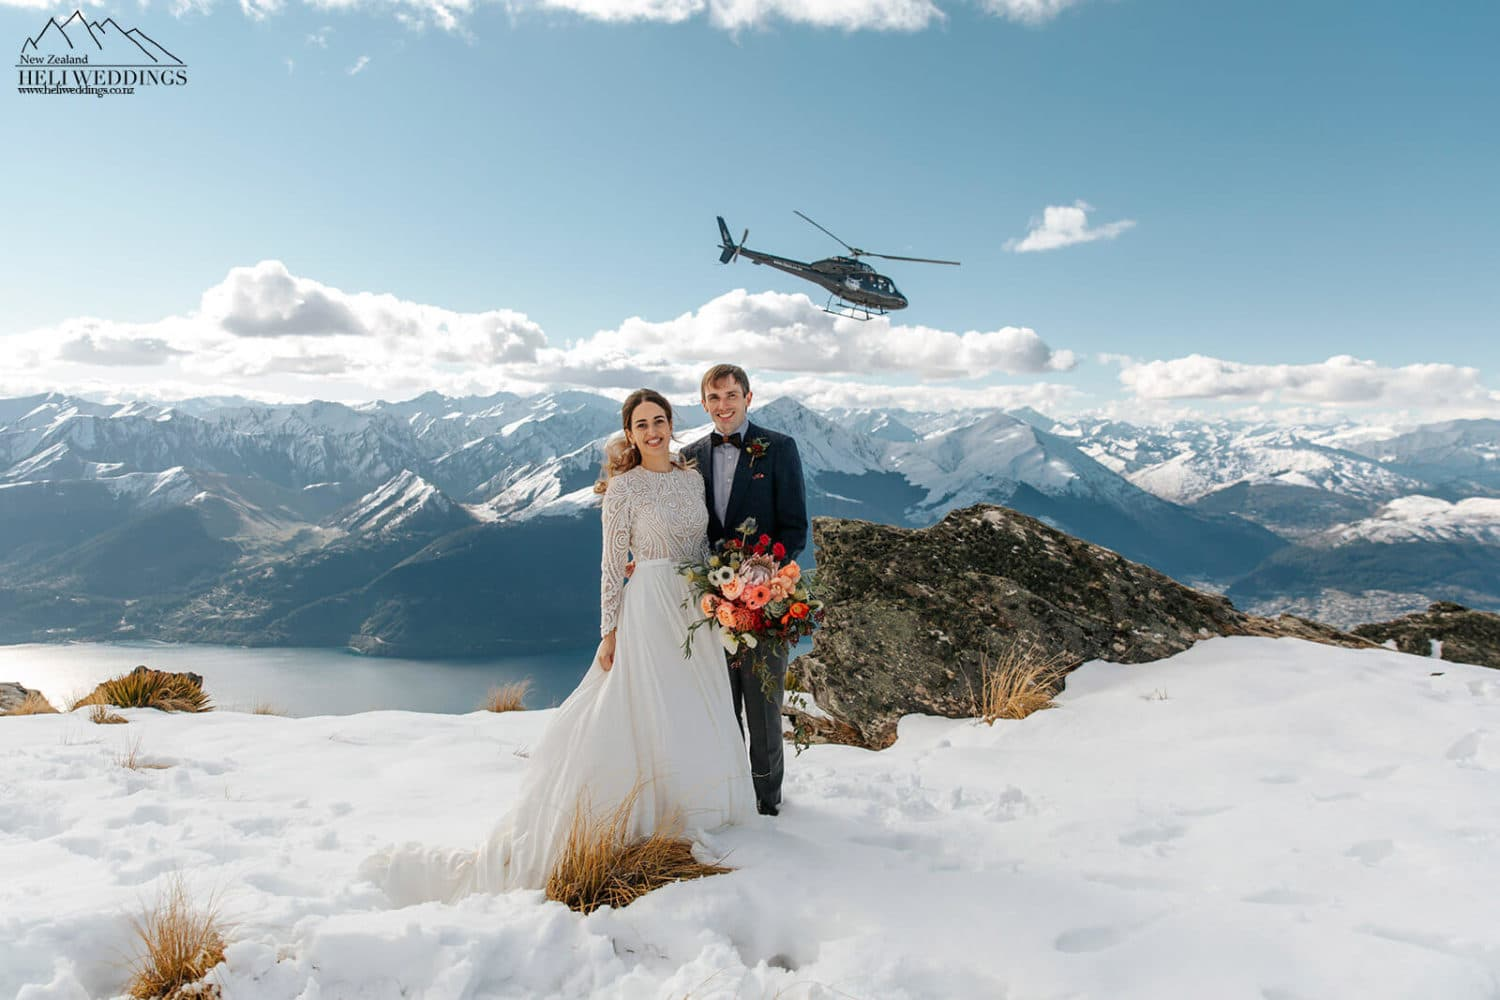 Queenstown Helicopter wedding in the snow with helicopter in the background